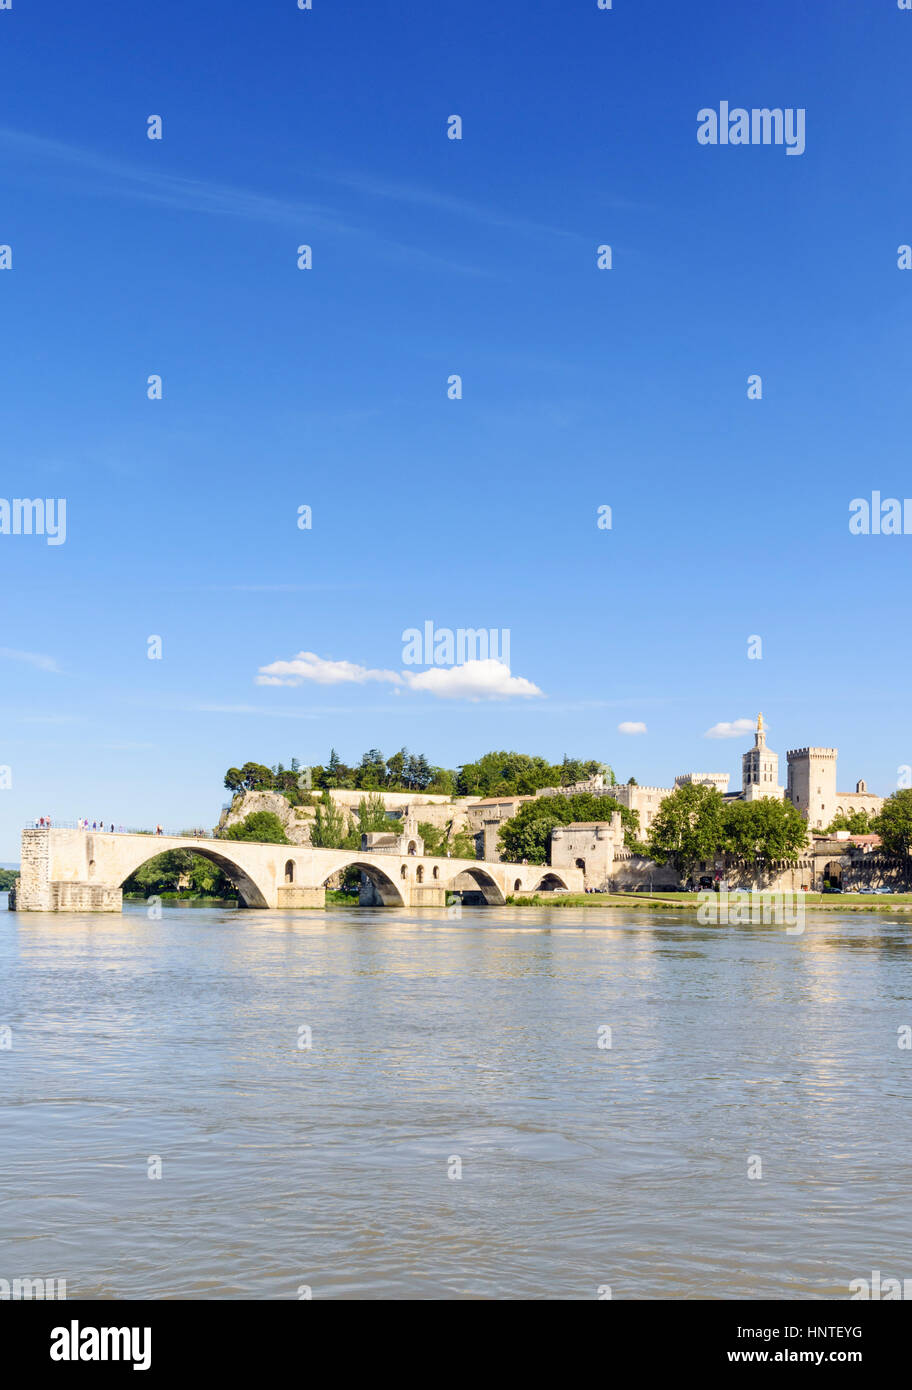 Pont Saint-Bénézet bridge, Avignon, France Stock Photo